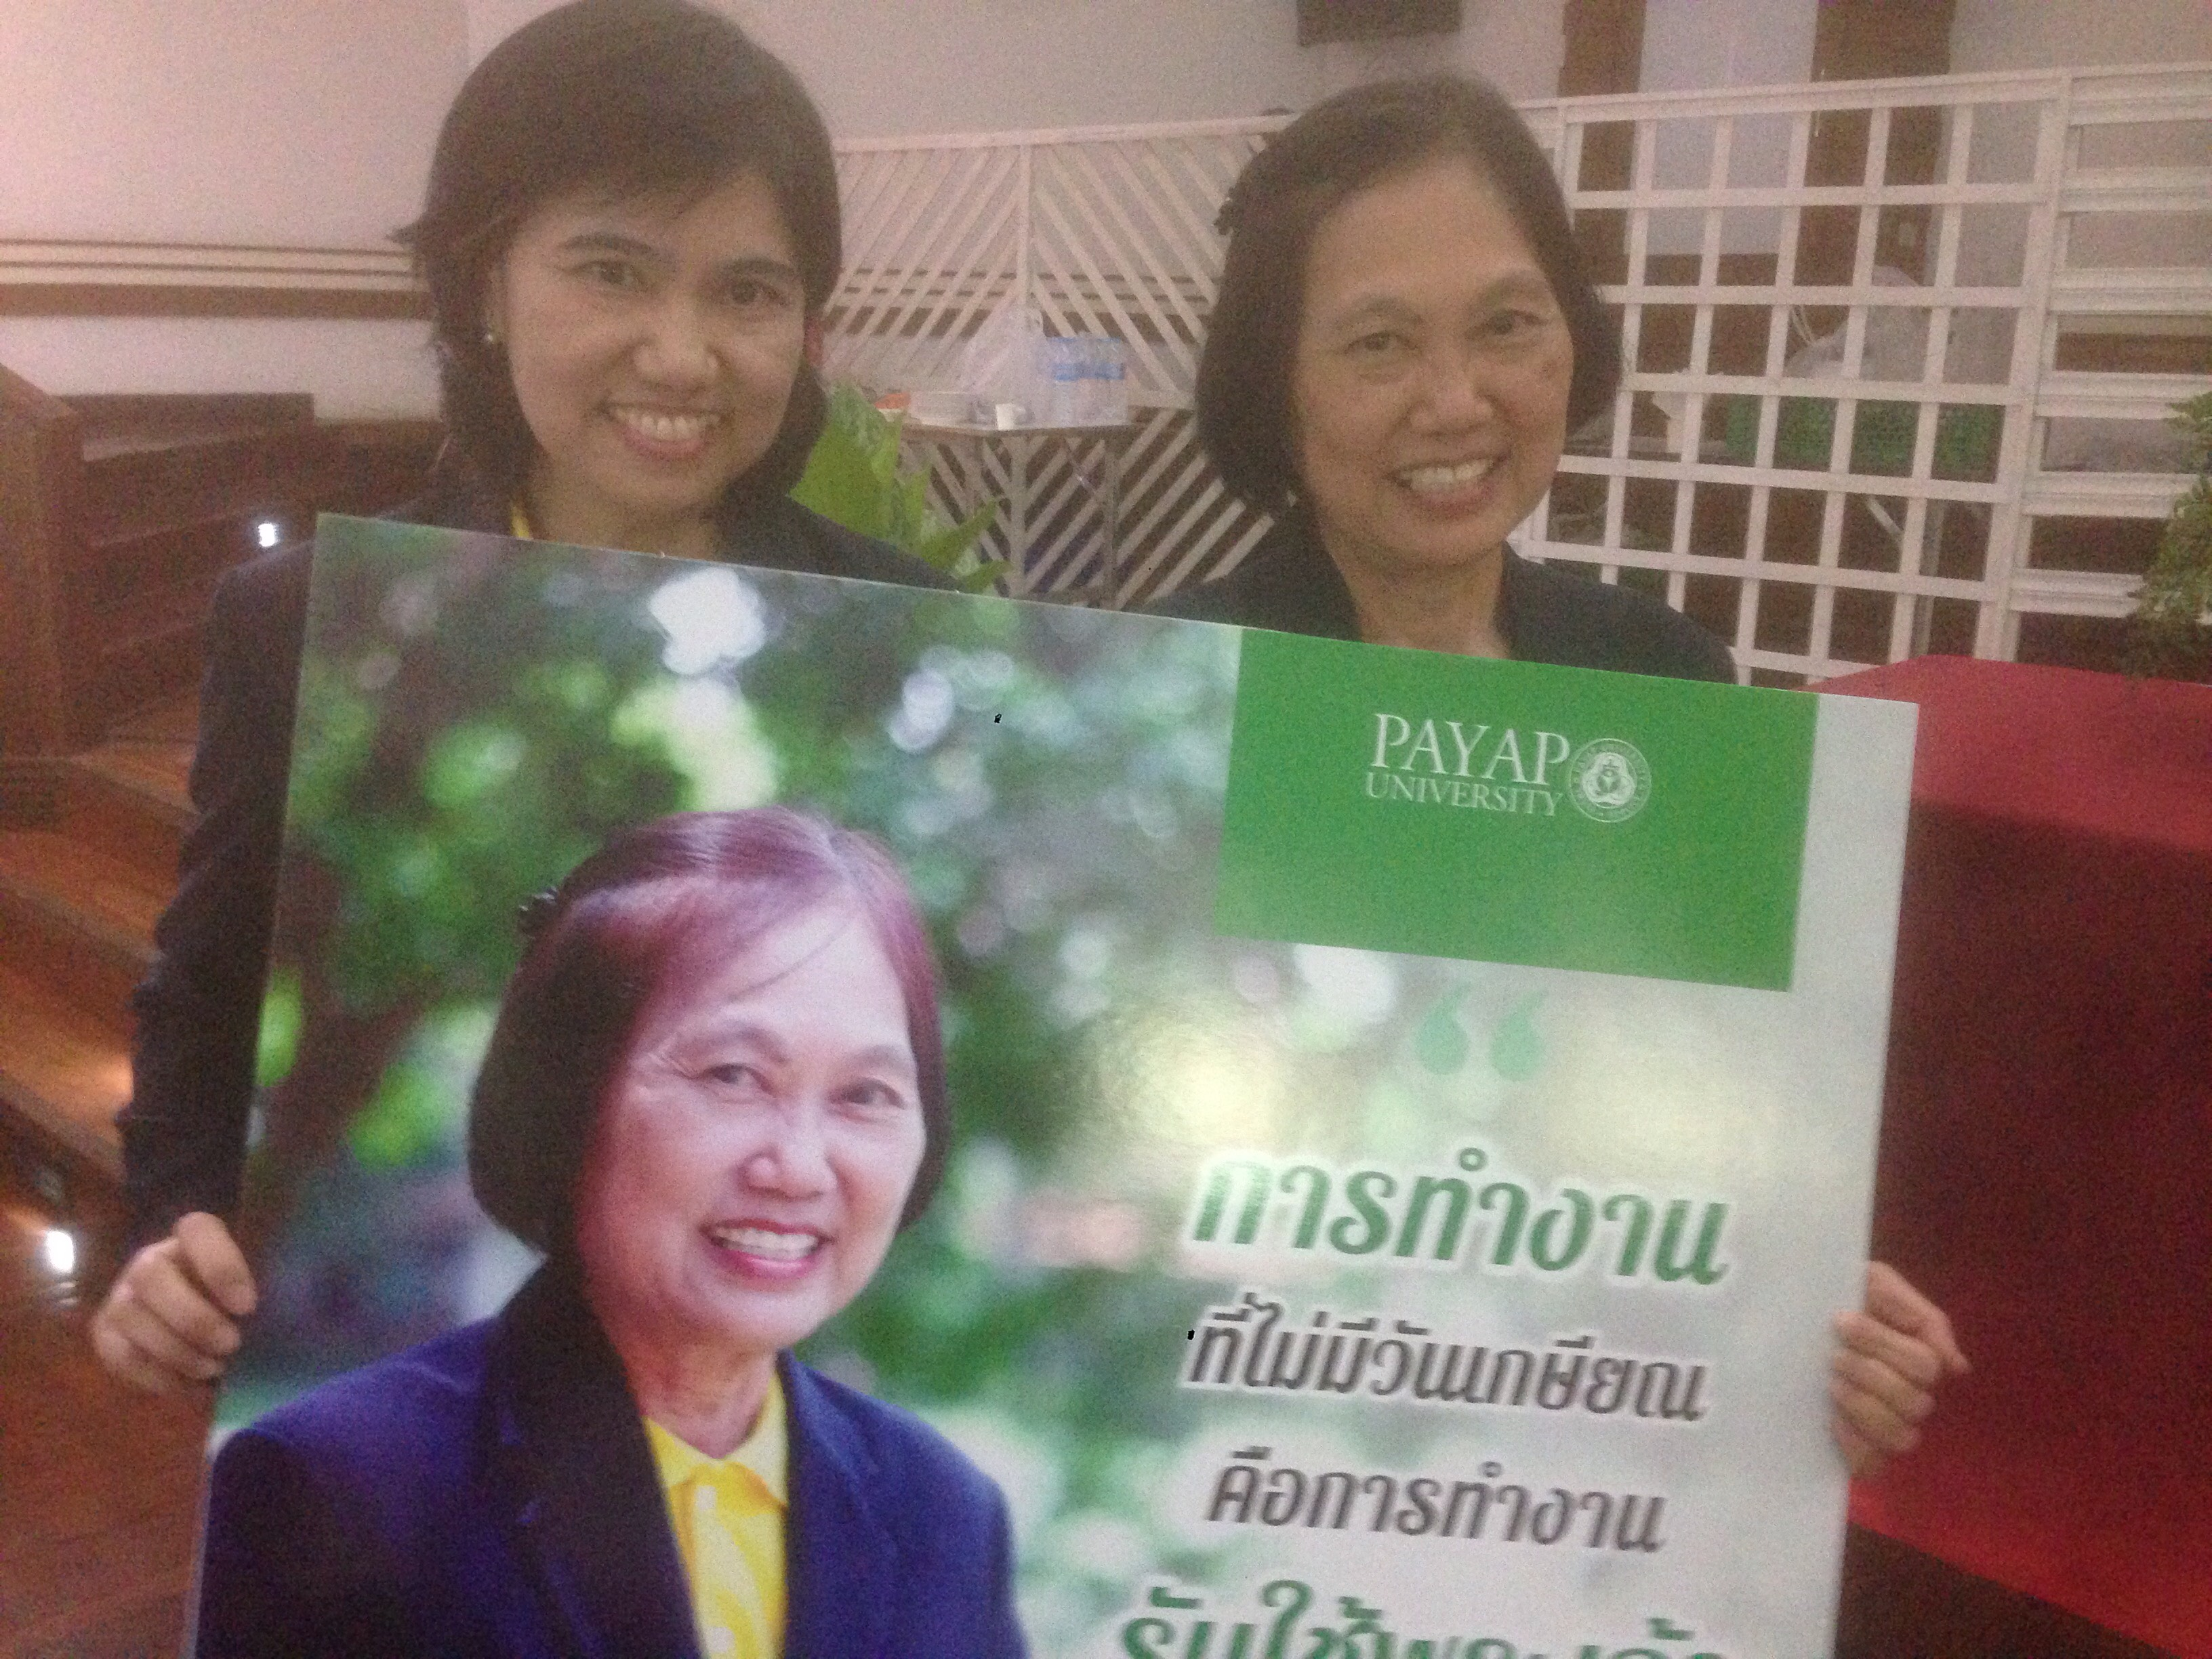 Ms. Tassaneeya and her sister, Dr. Vanlapa, both of whom came to know Christ at Payap University.